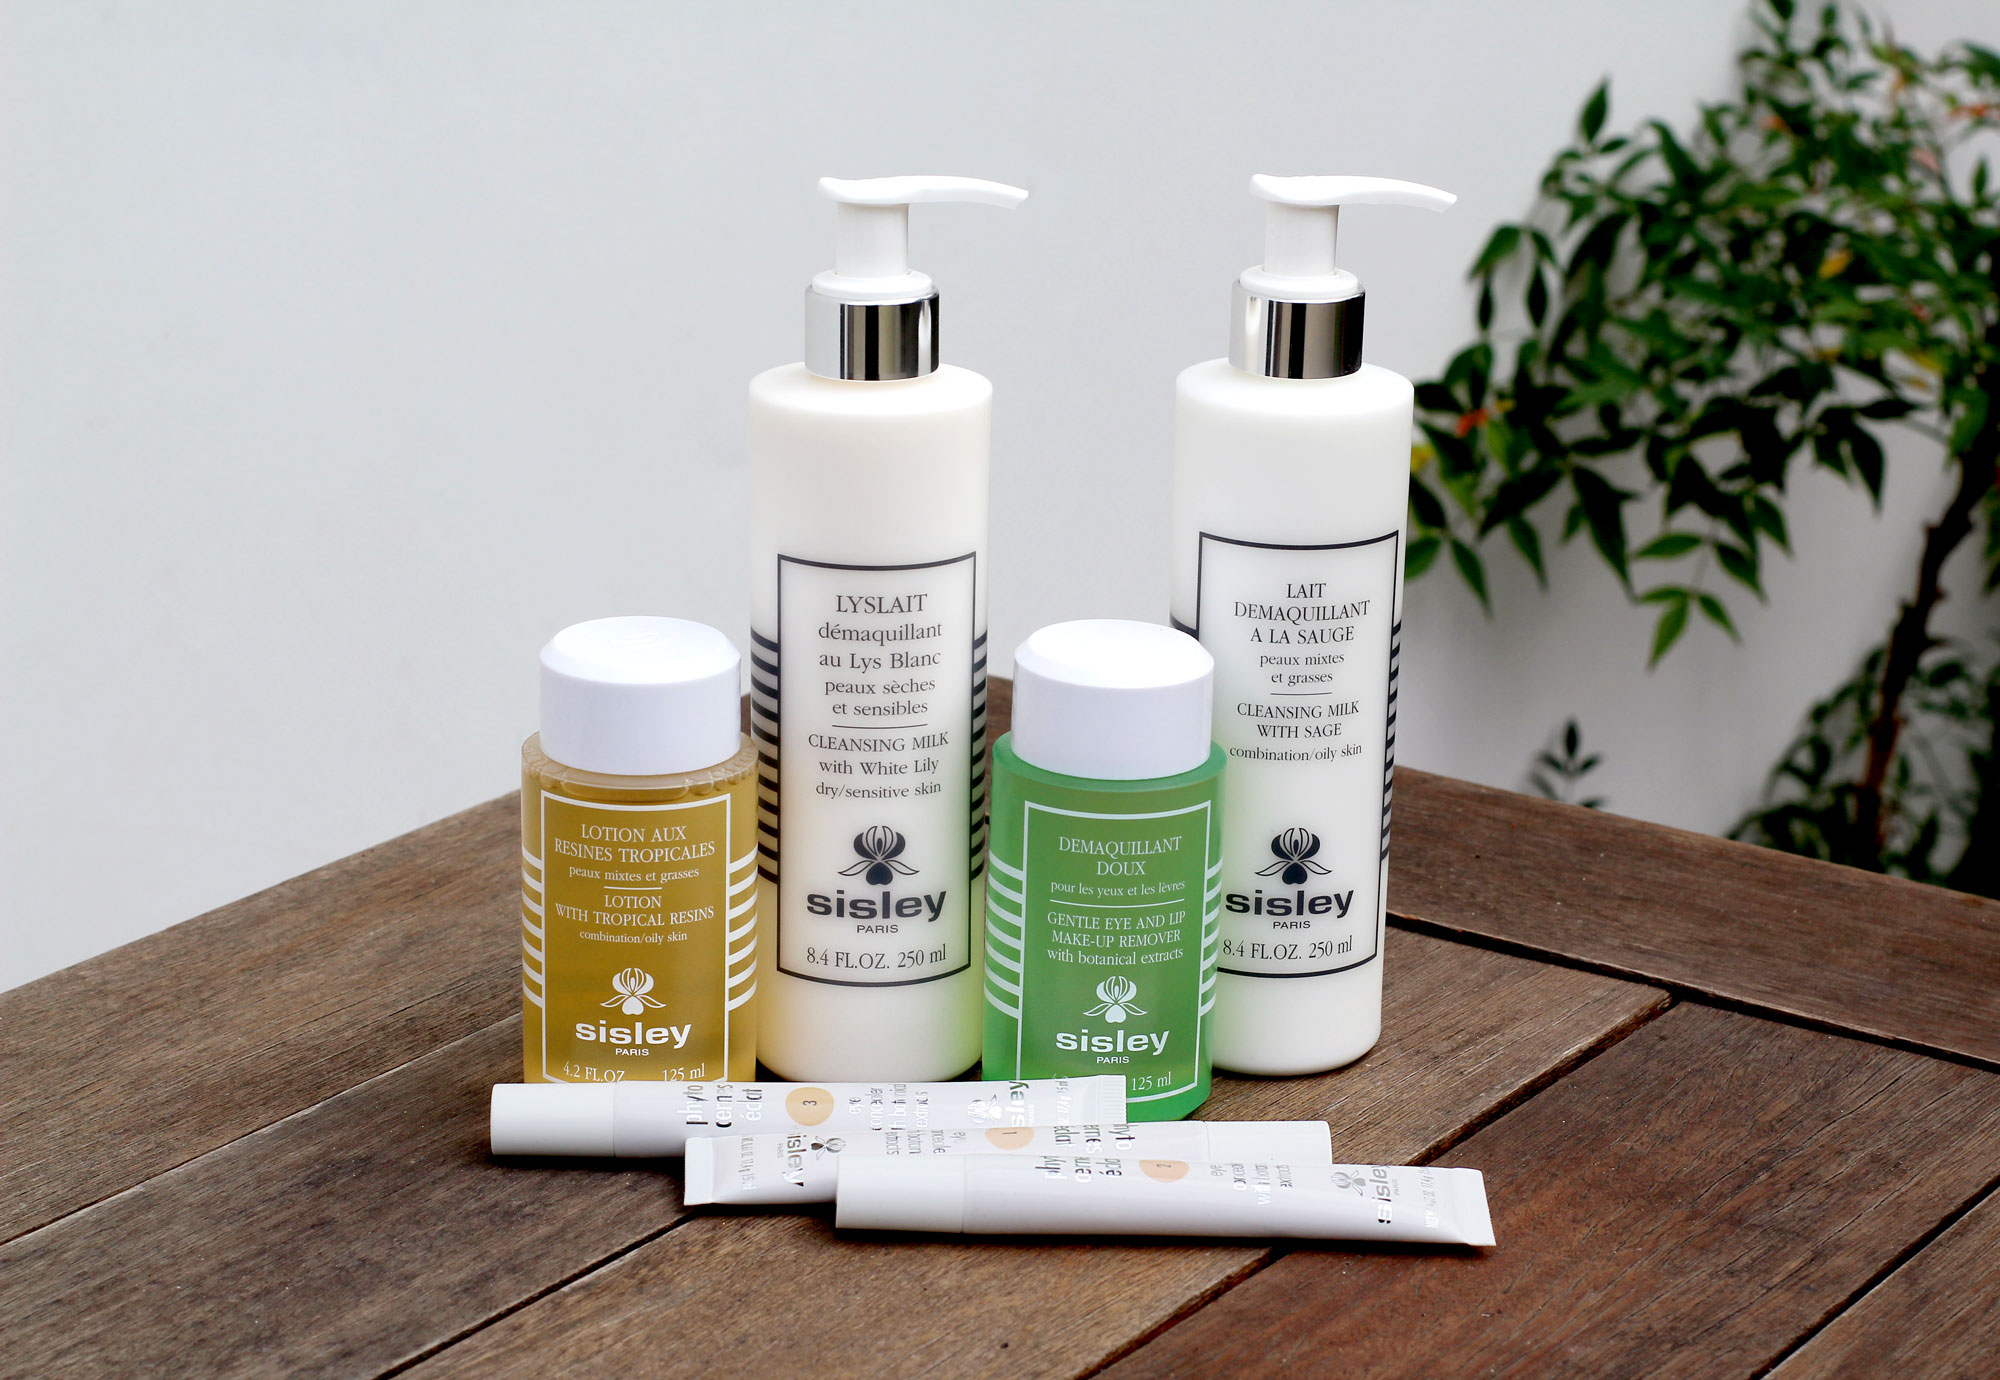 KIT SISLEY - 1- Lotion With Tropical Resins: combination/oil skin;2- Lyslait - Cleansing Milk With White Lily: dry/sensitive skin;3- Gentle Eye and Lip Make-upRremover With Botanical extracts;4- Lait - Cleansing Milk With Sage: combination/oil skin;5- Eye Concealer With Botanical Extracts: Cor 1;6- Eye Concealer With Botanical Extracts: Cor 2;7- Eye Concealer With Botanical Extracts: Cor 3.